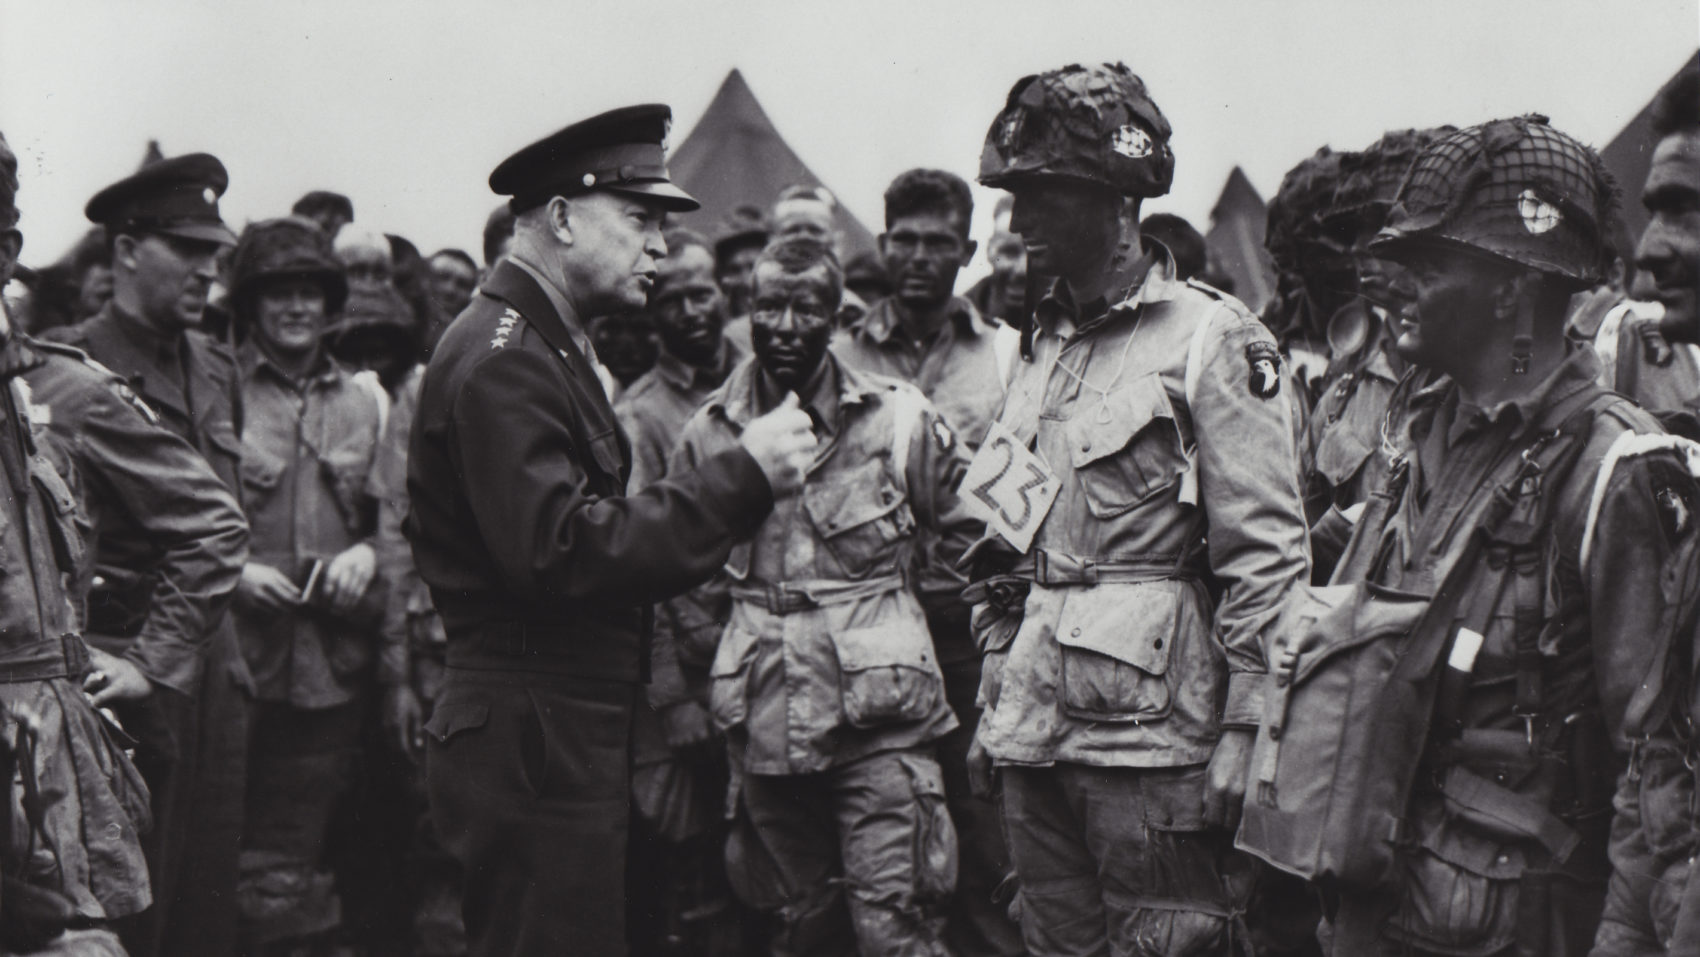 General Dwight D. Eisenhower addresses troops before the D-Day invasion of Normandy. (Courtesy of The National WWII Museum)